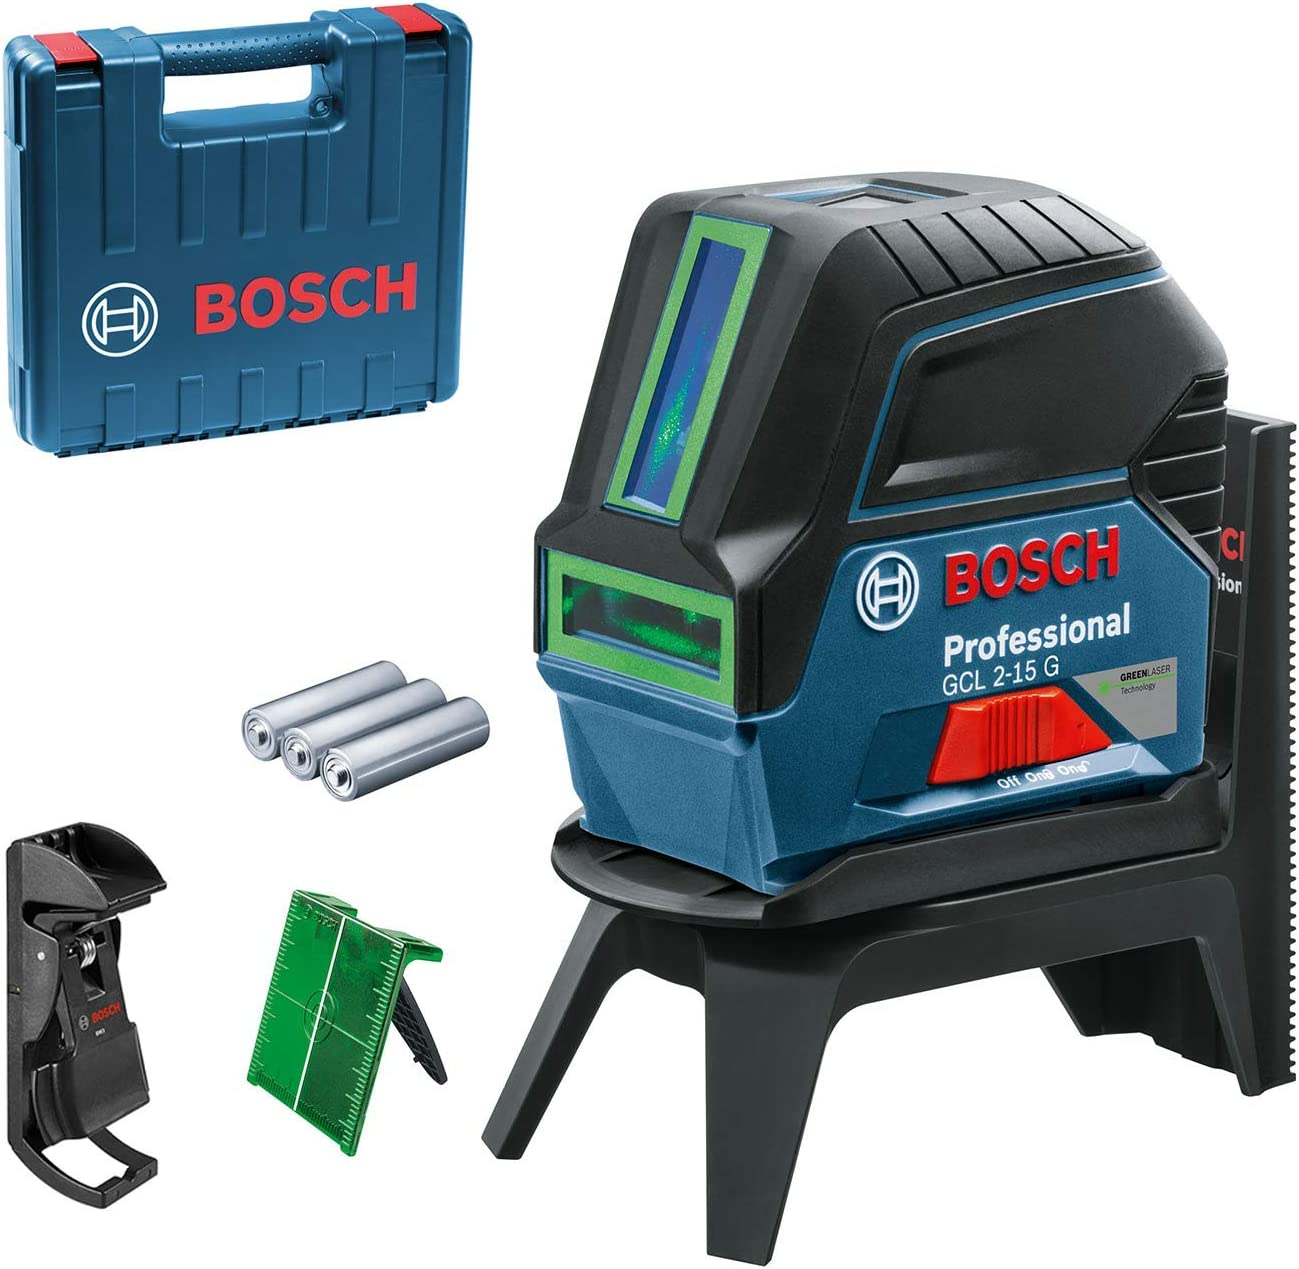 Bosch Professional Cross Line Laser GCL 2-15 G (with Plumb Points, Working Range: 15 m, Green Laser; in Carrying Case: 3 x 1.5 V LR6 Batteries, RM 1 Professional Rotating Mount, Laser Target Plate)